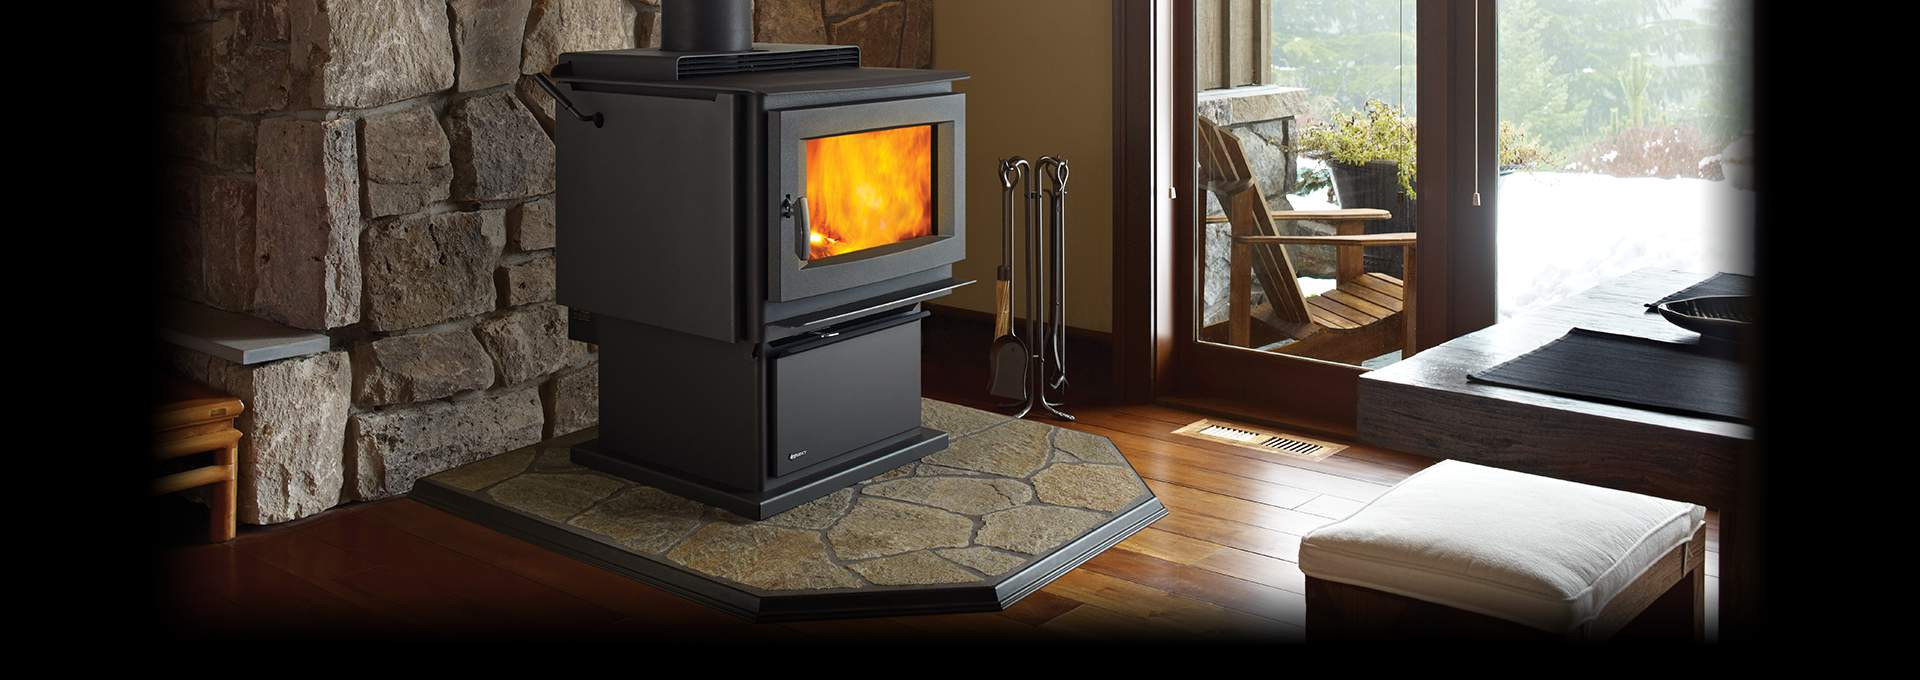 hardwood floor fireplace transition of wood burning stoves regency fireplace products inside regency pro series feature video